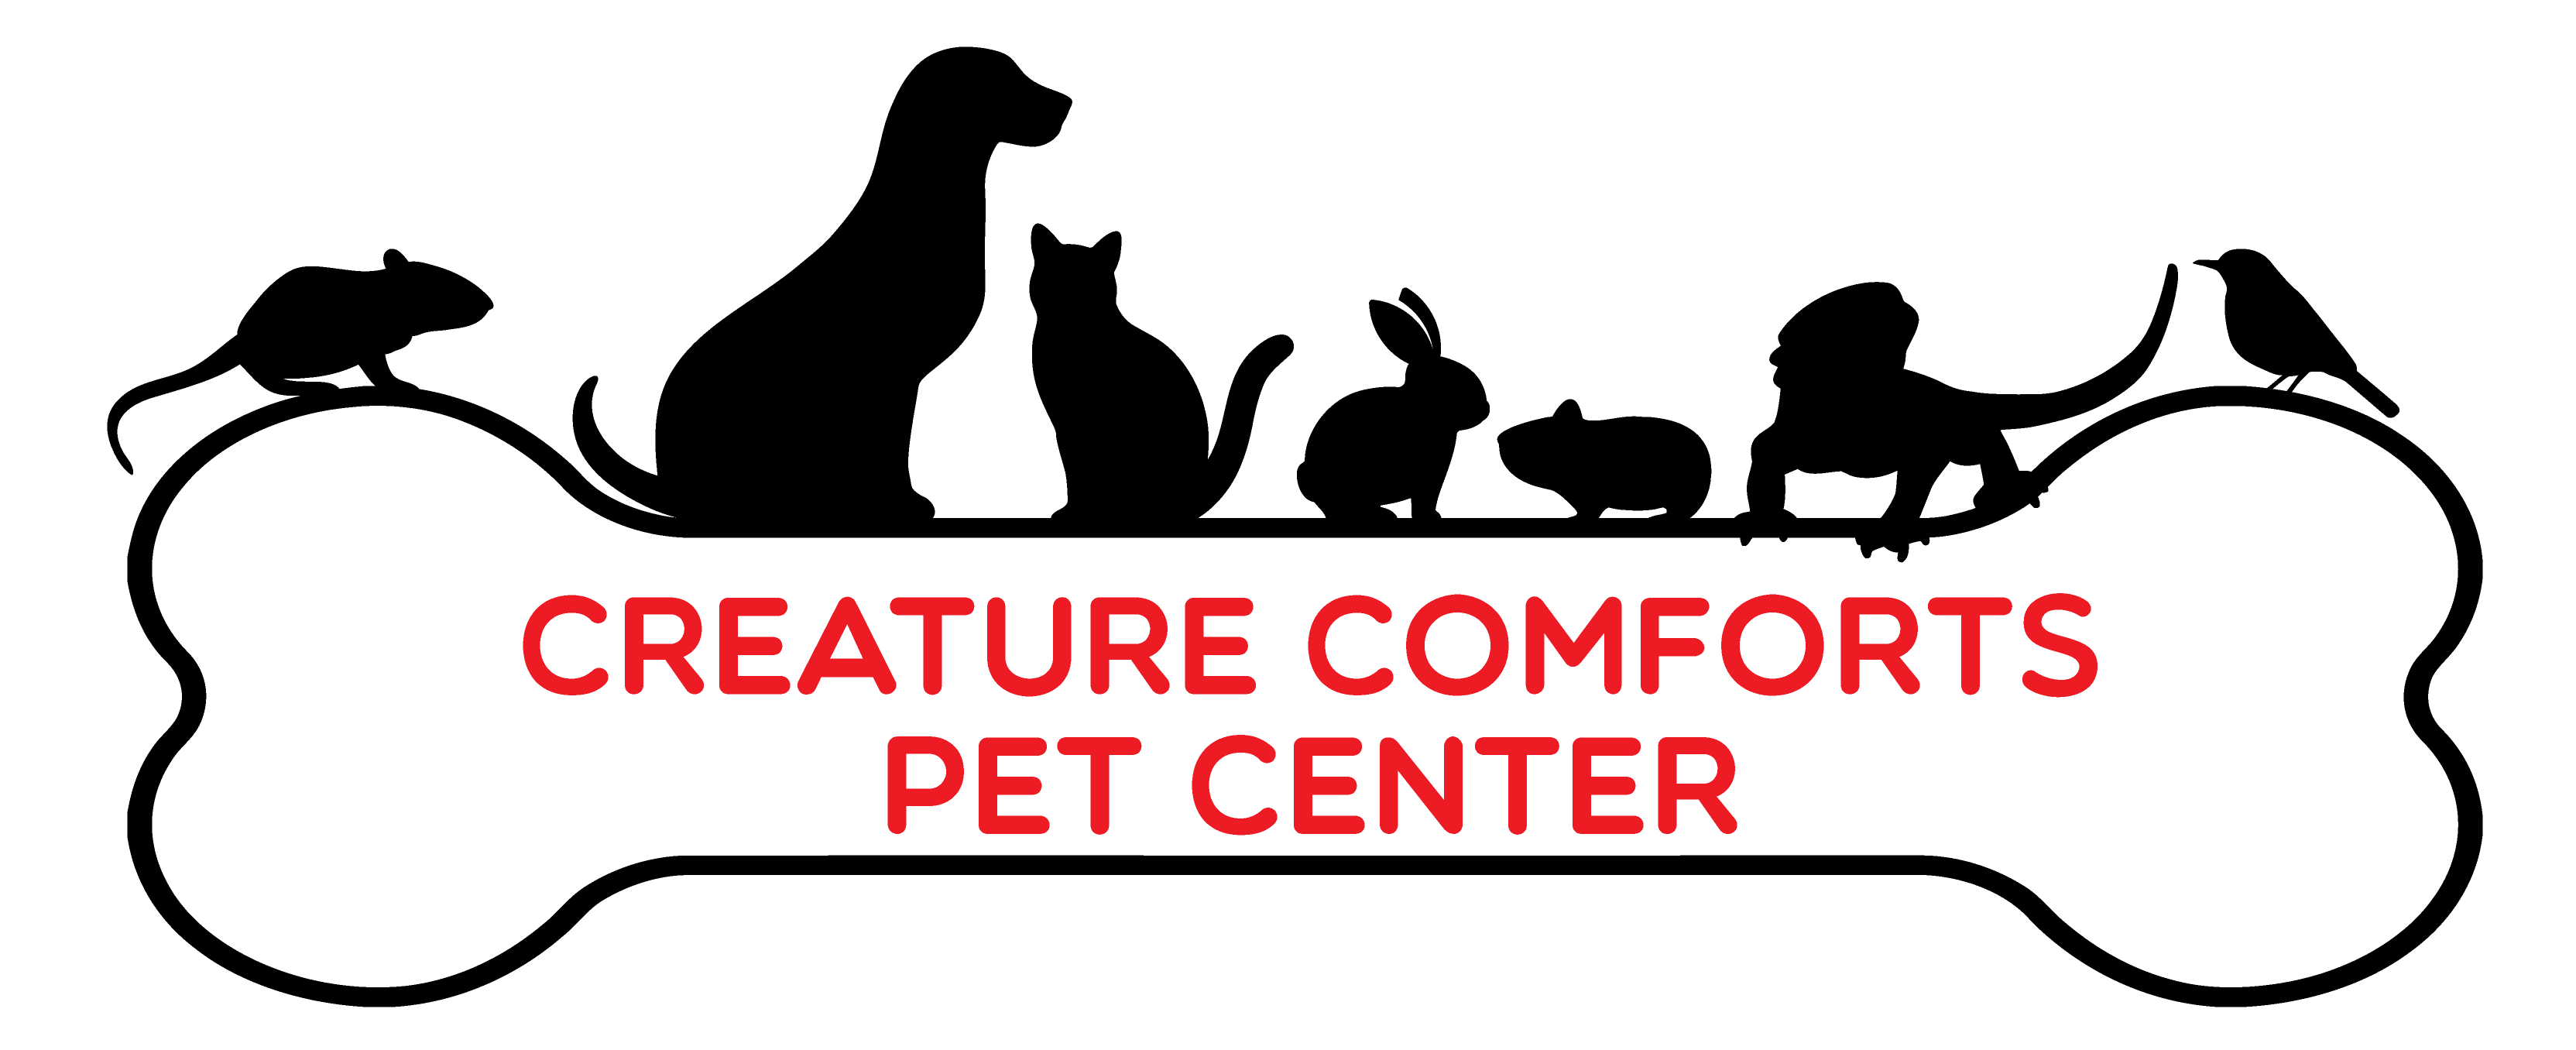 Creature Comforts Pet Center